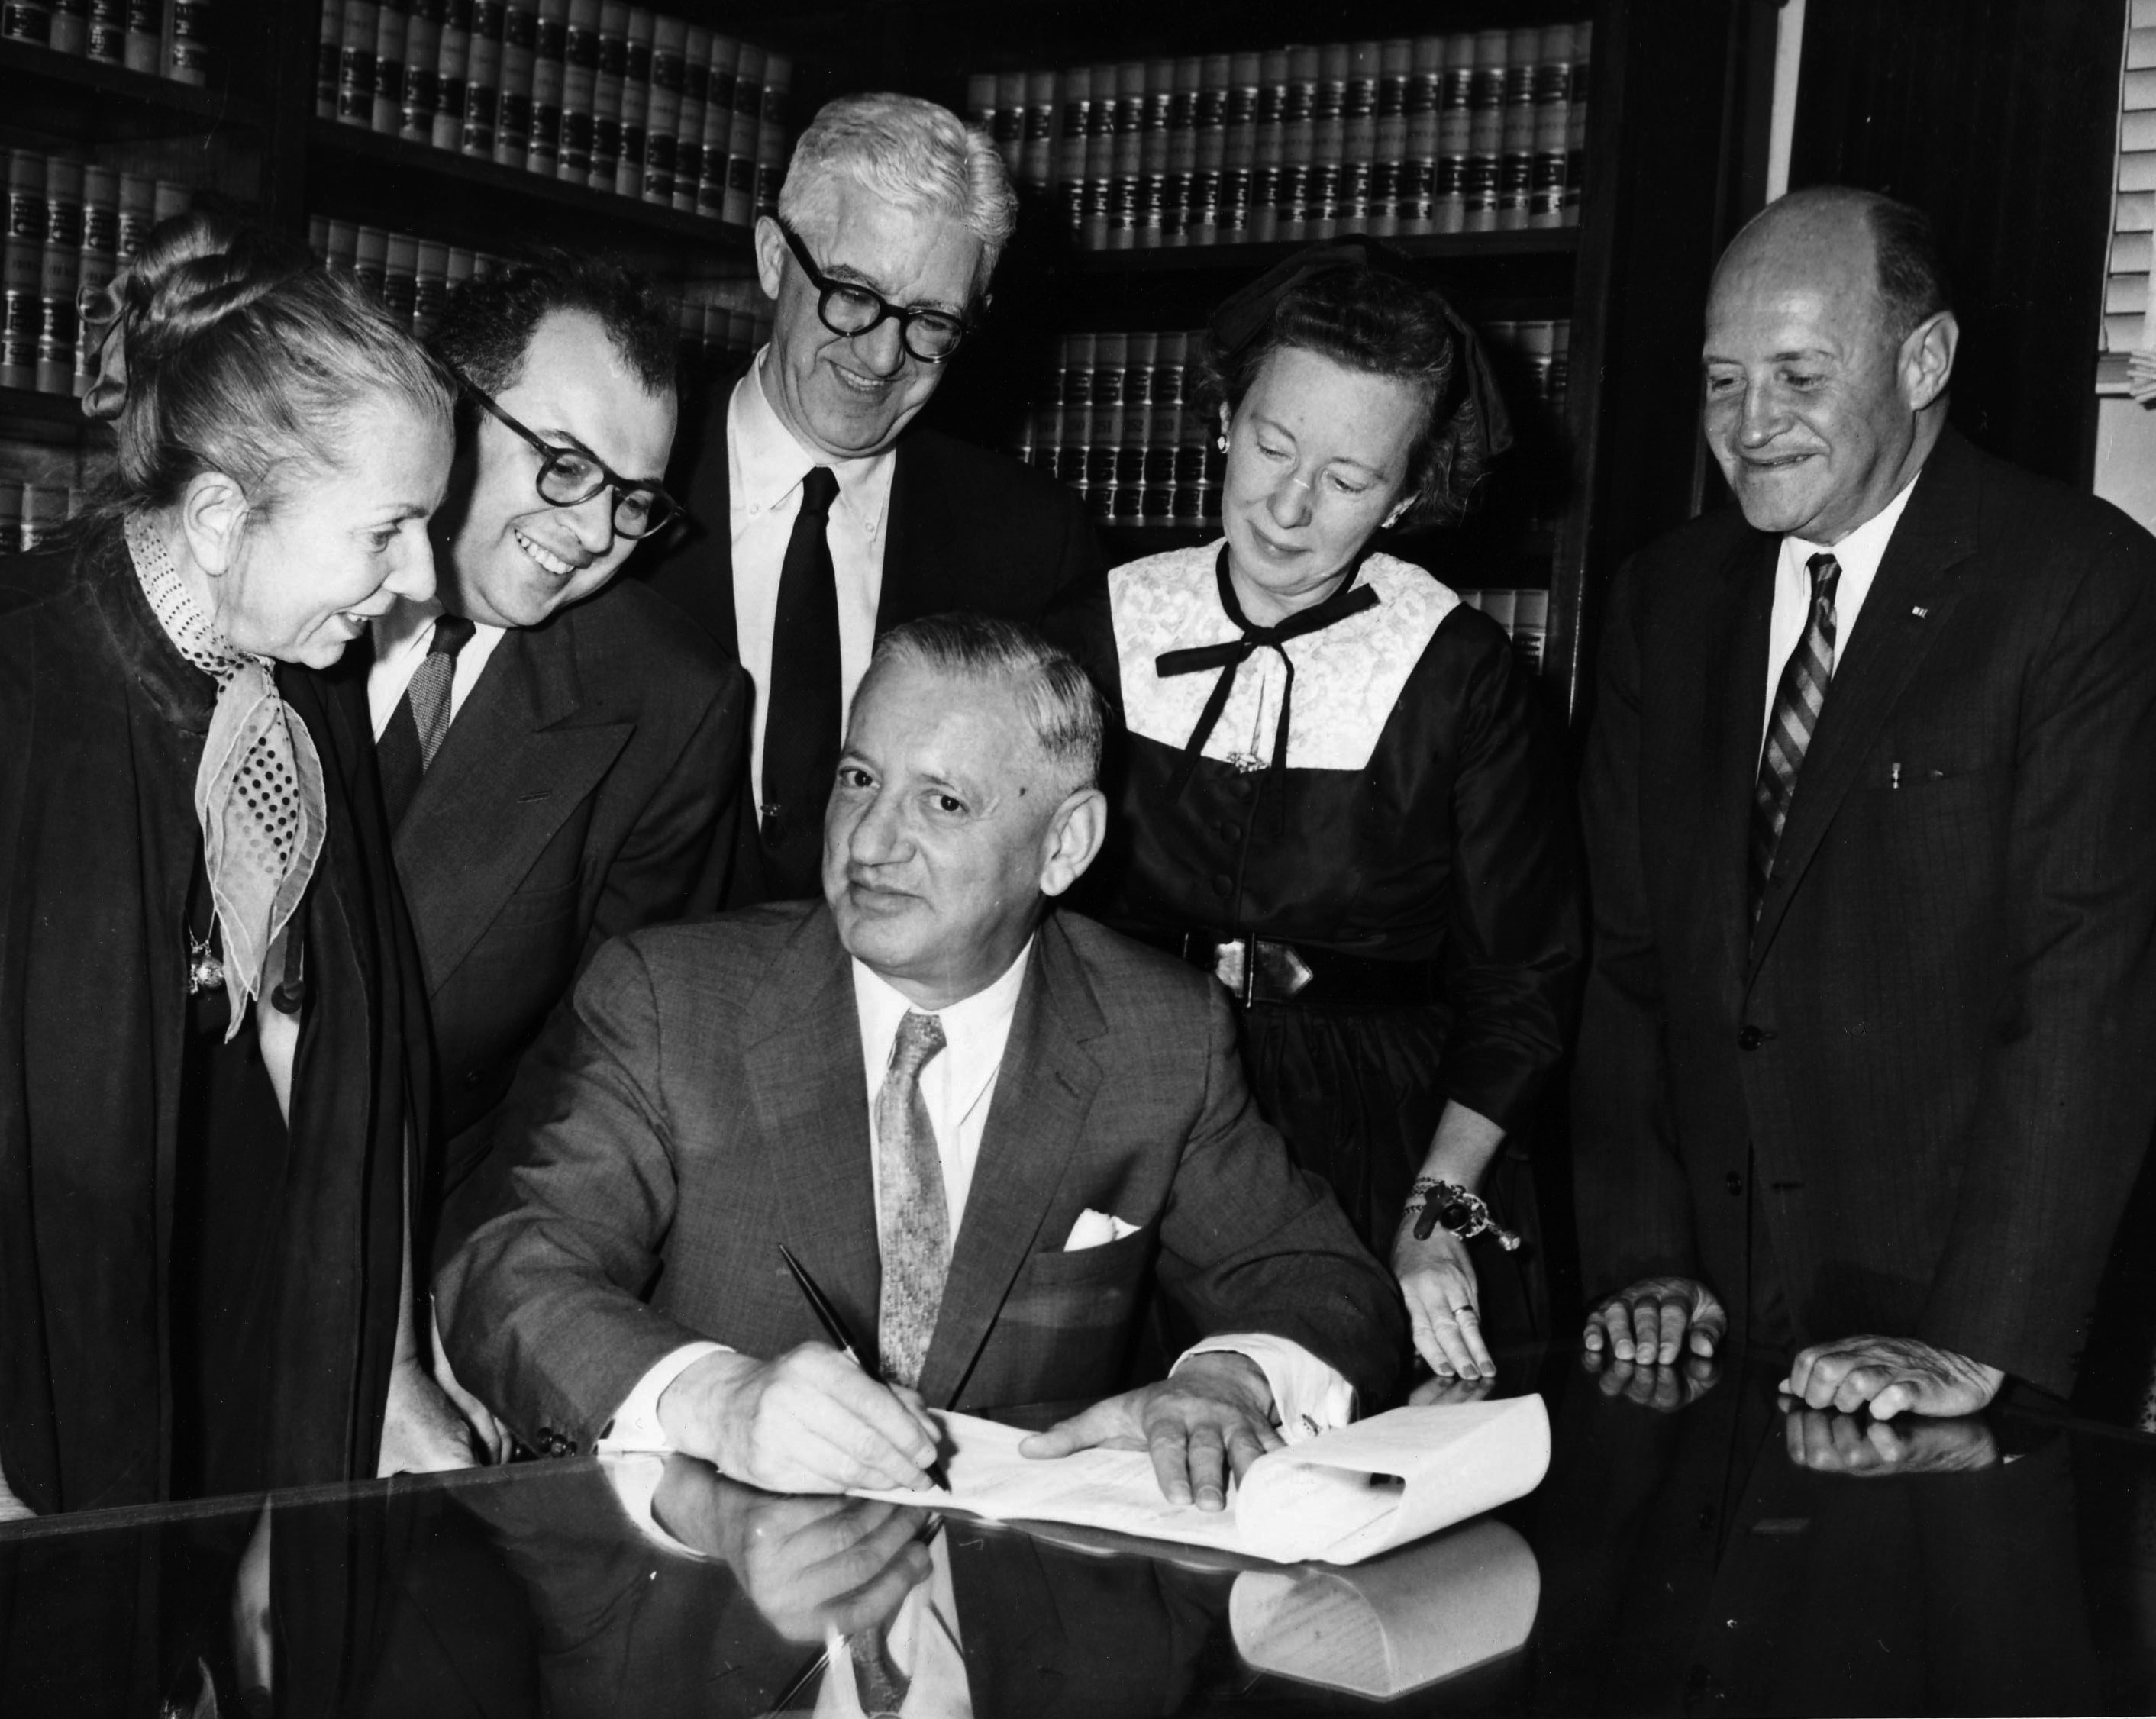 Judge Saul Streit, Presiding Justice of the New York Supreme Court (seated), signs the incorporation documents witnessed by original Members (left to right) Hanya Holm, Ezra Stone, Shepard Traube, Agnes de Mille + legal counsel Erwin Feldman.